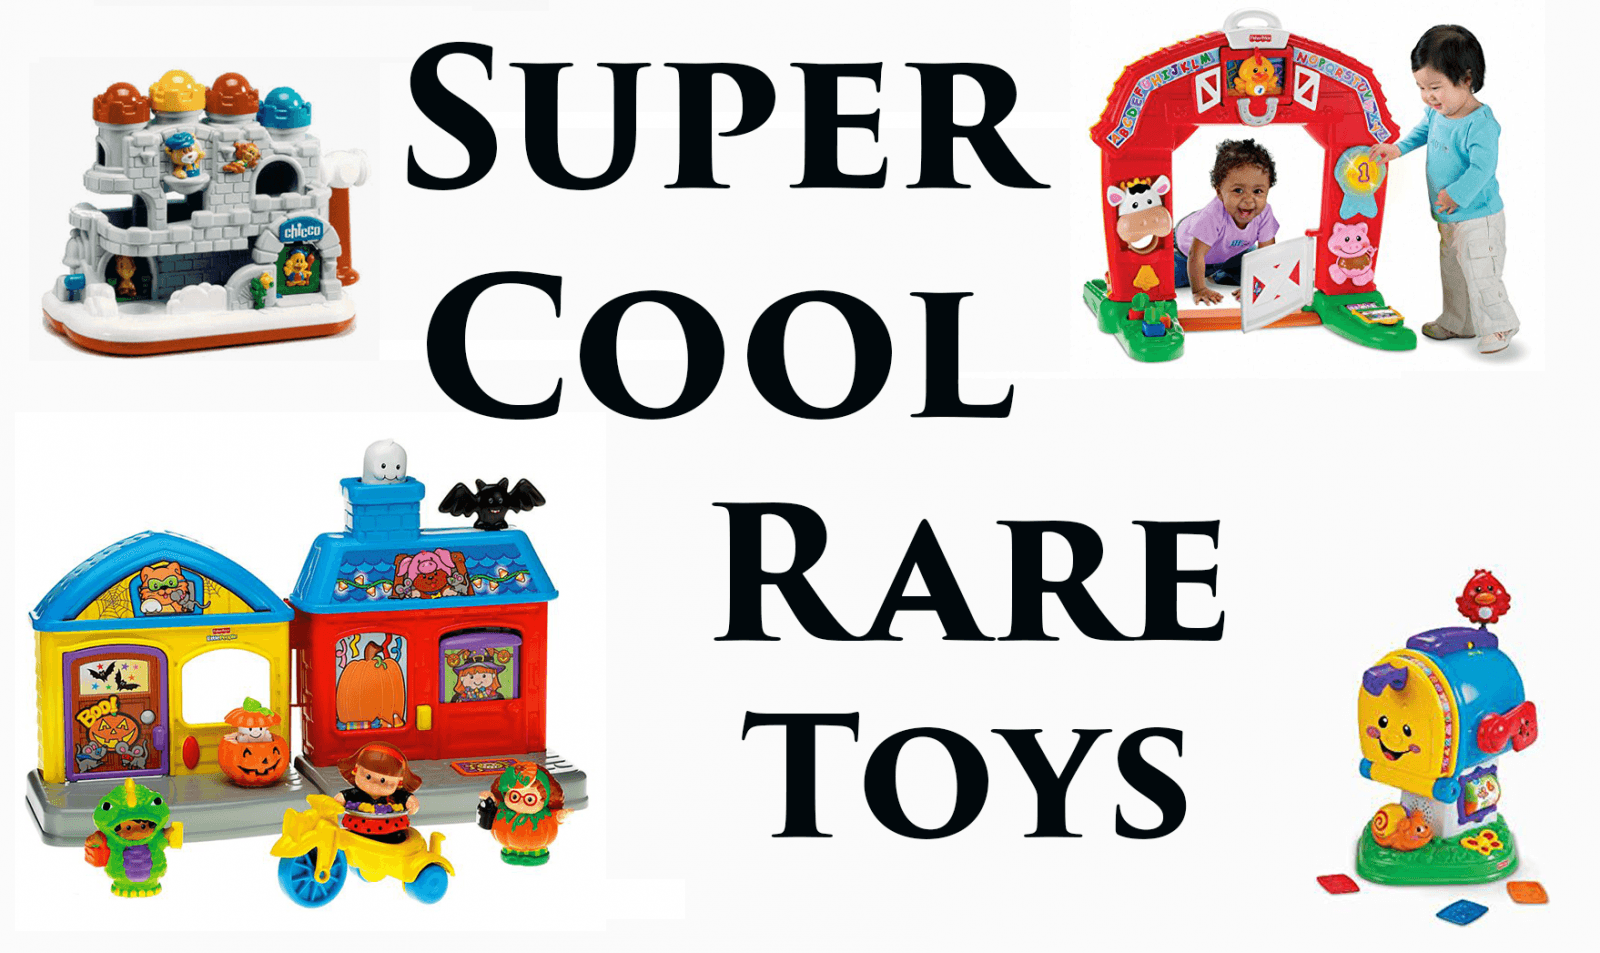 Super Cool Rare Toys - The Series